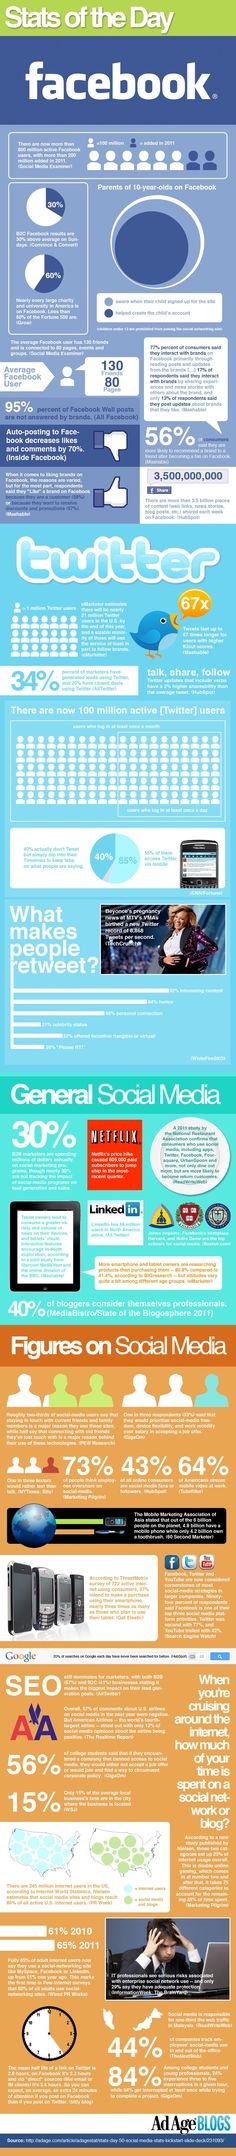 Social Media Statistics 2012 #socialmedia #infographic #facebook #twitter #marketing #advertising